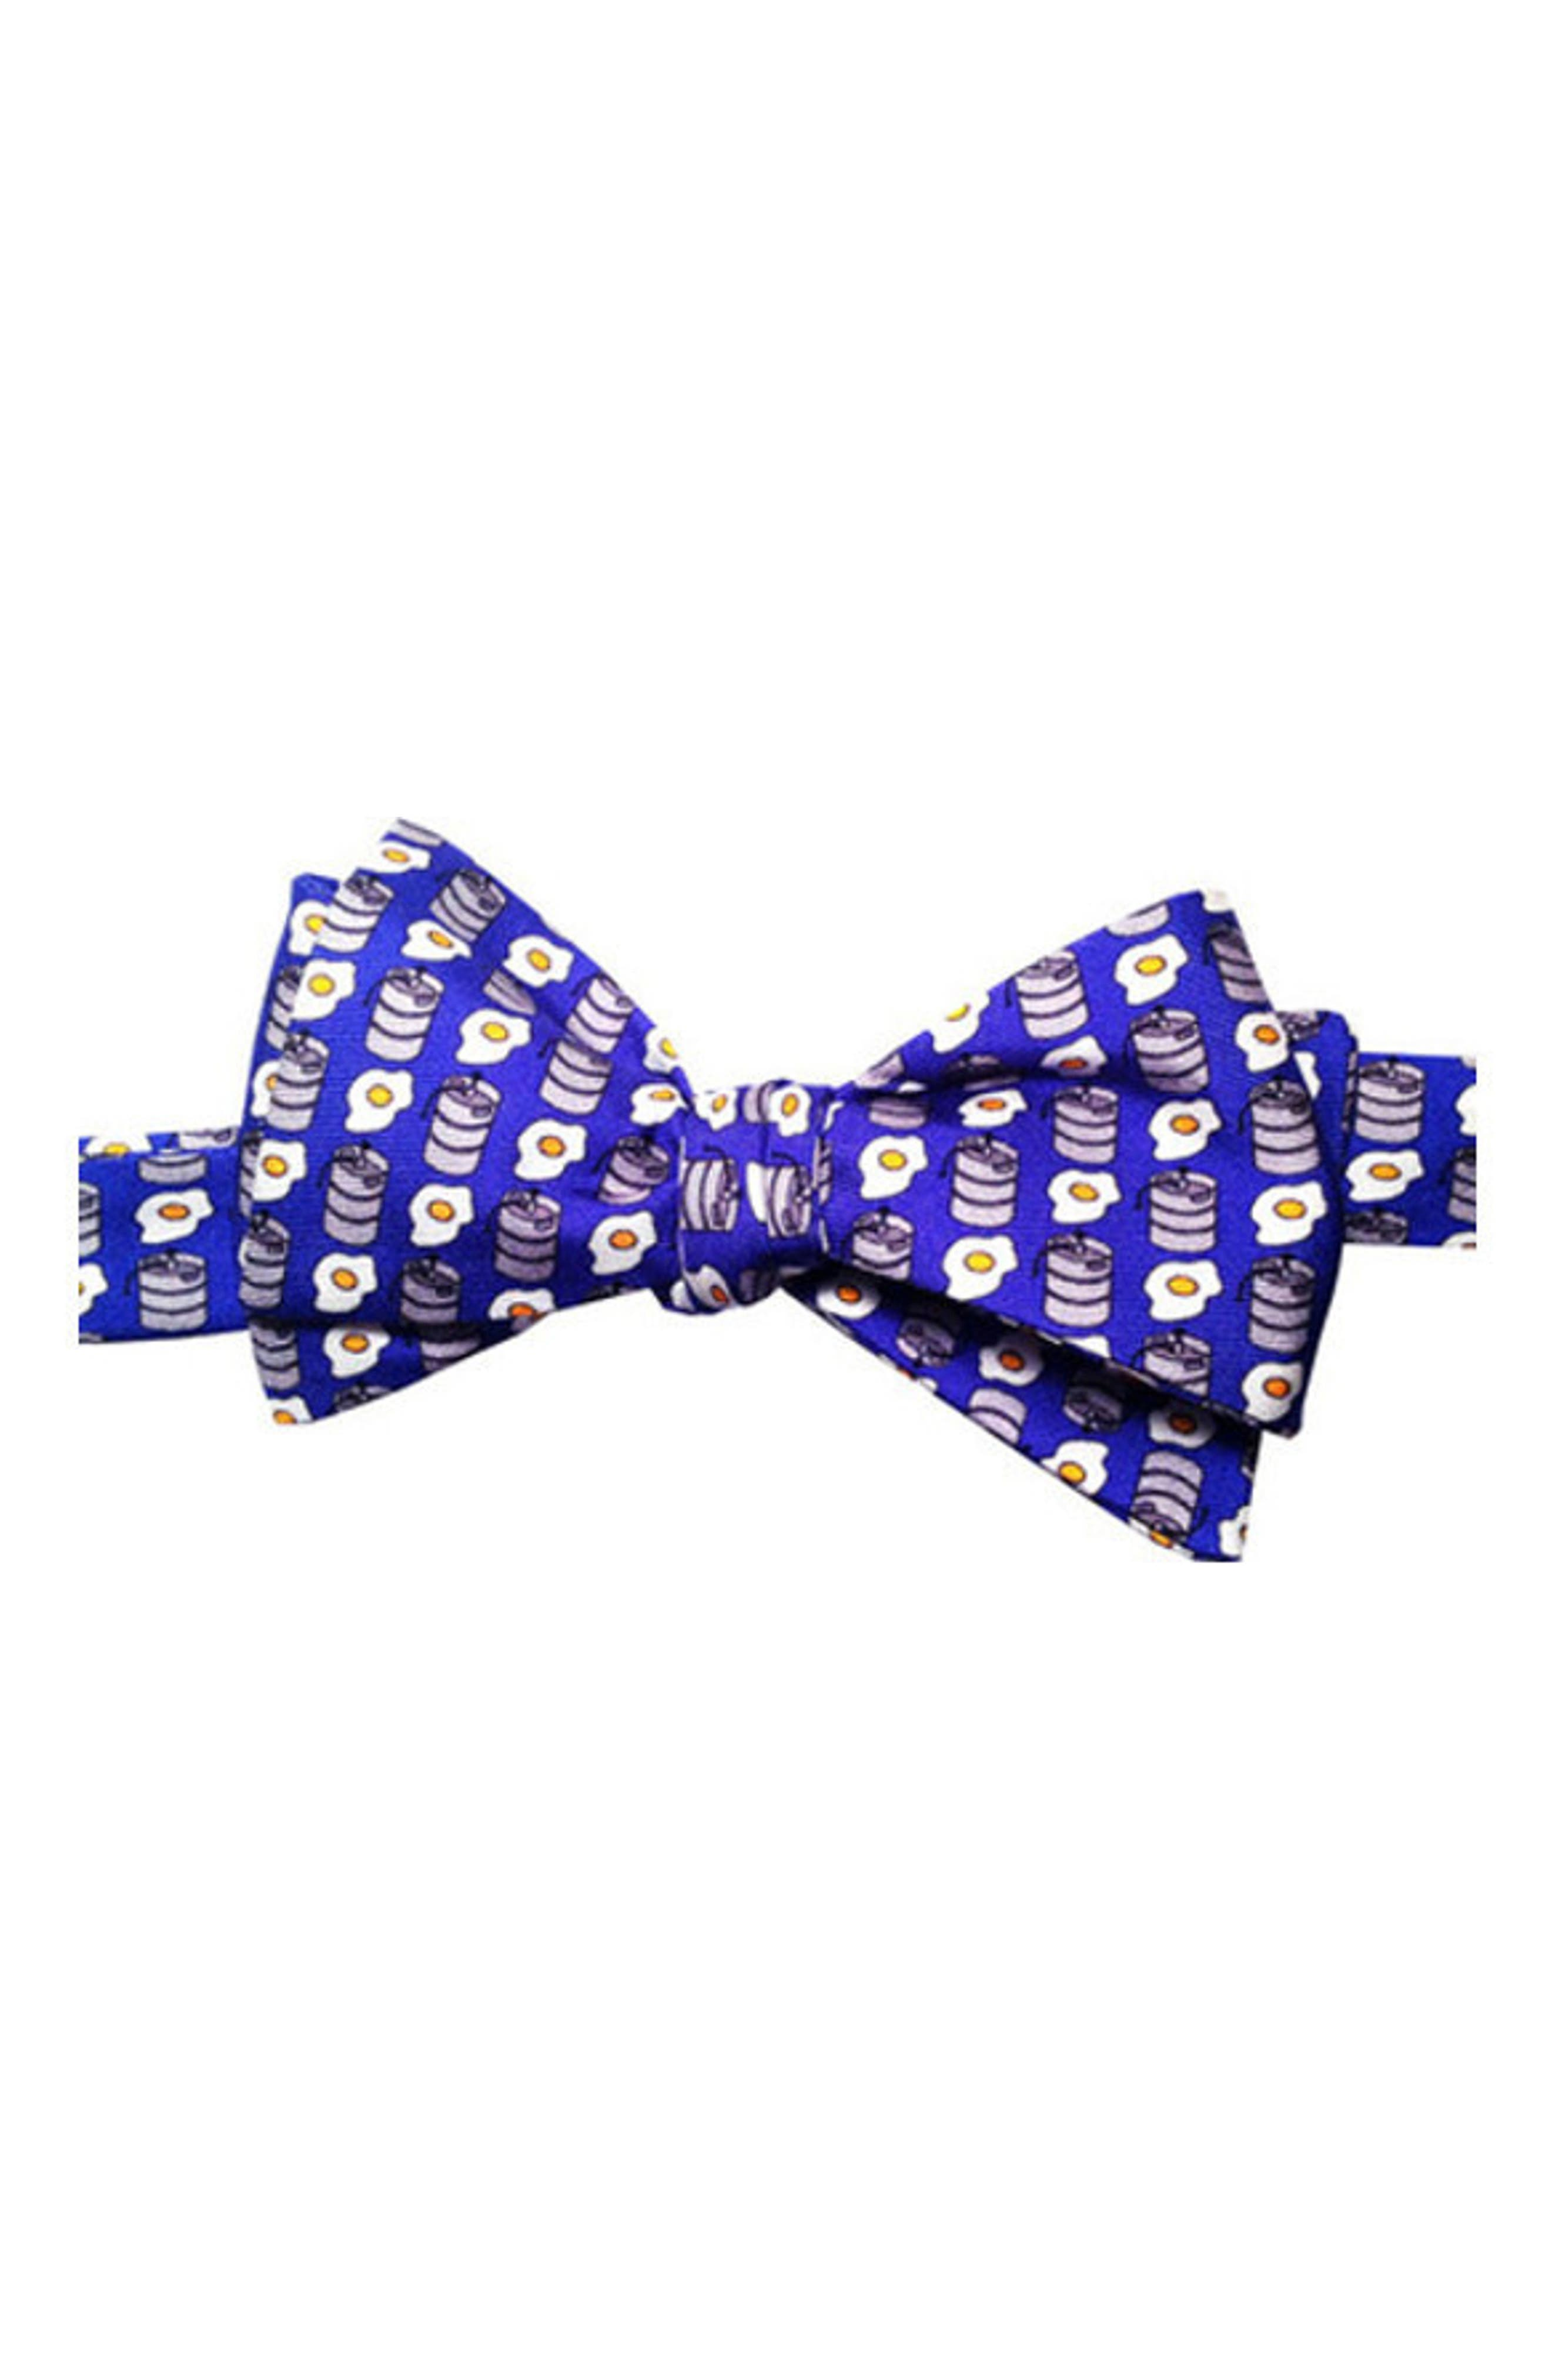 Kegs & Eggs Silk Bow Tie,                             Main thumbnail 1, color,                             Blue